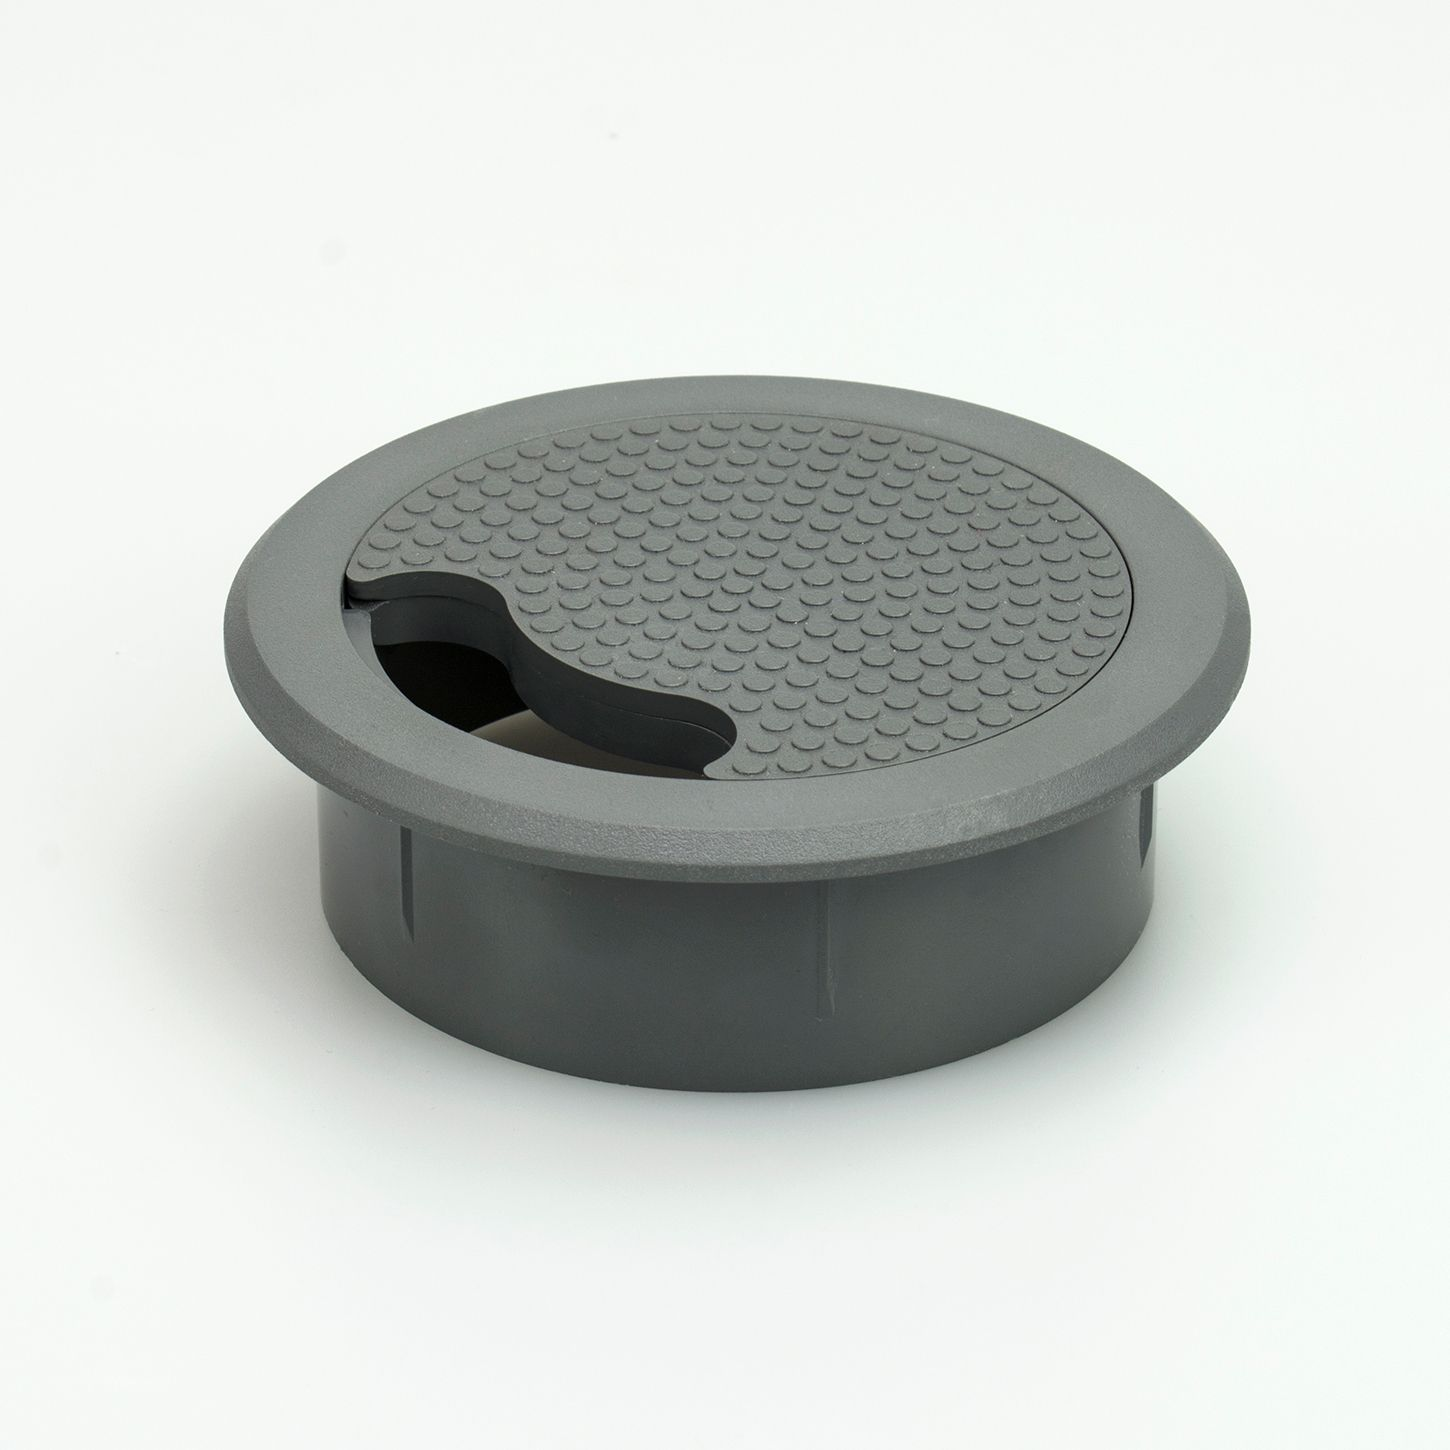 outlets with hole top desk outlet rubber cover power grommets tabletop innovation cable peerless grommet electrical computer